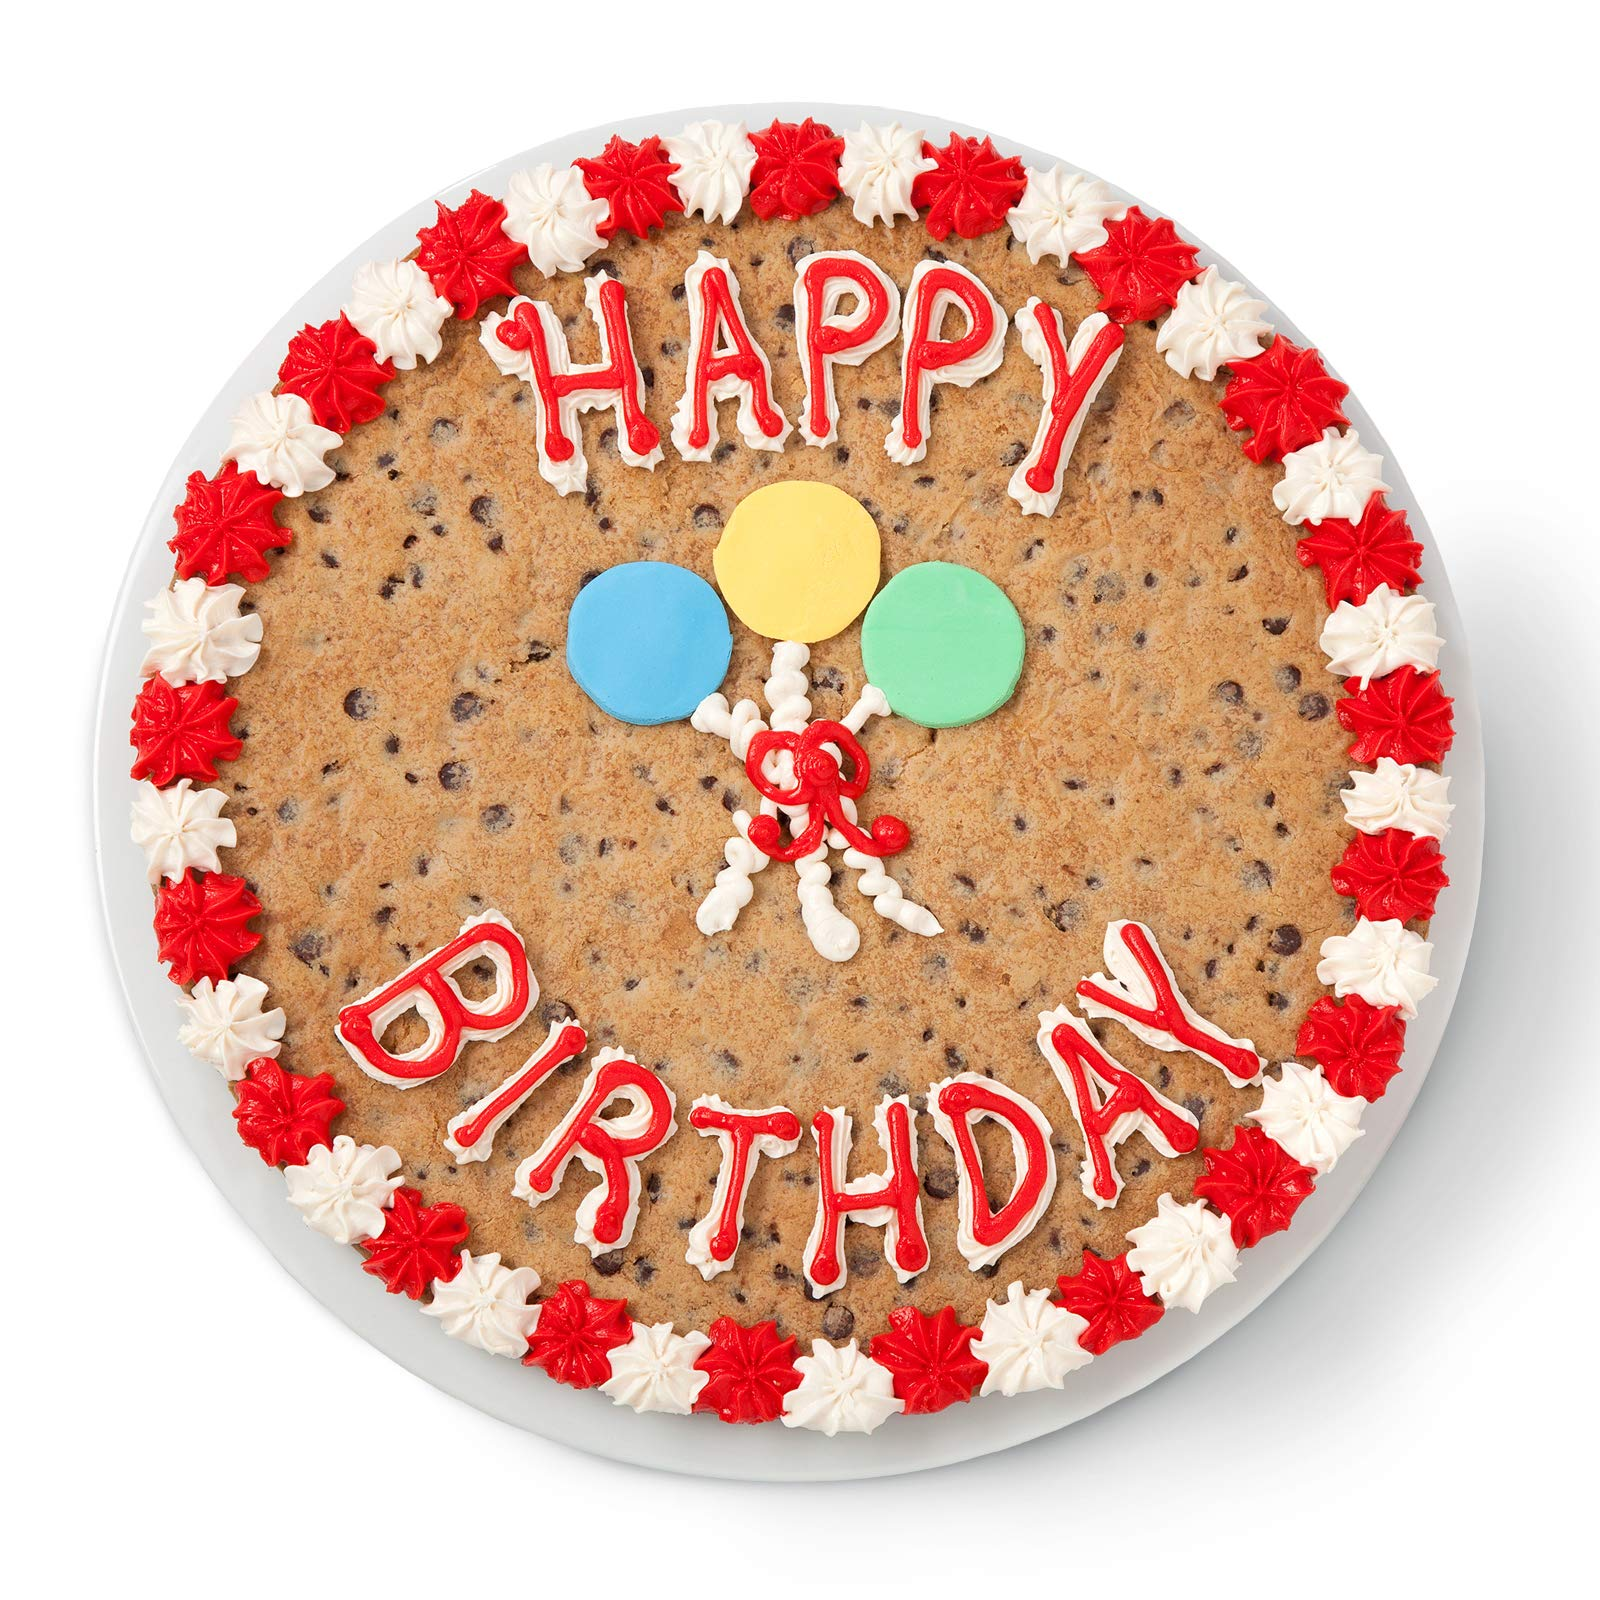 Superb Mrs Fields Cookies Happy Birthday 12 Cookie Cake Hand Frosted Personalised Birthday Cards Veneteletsinfo